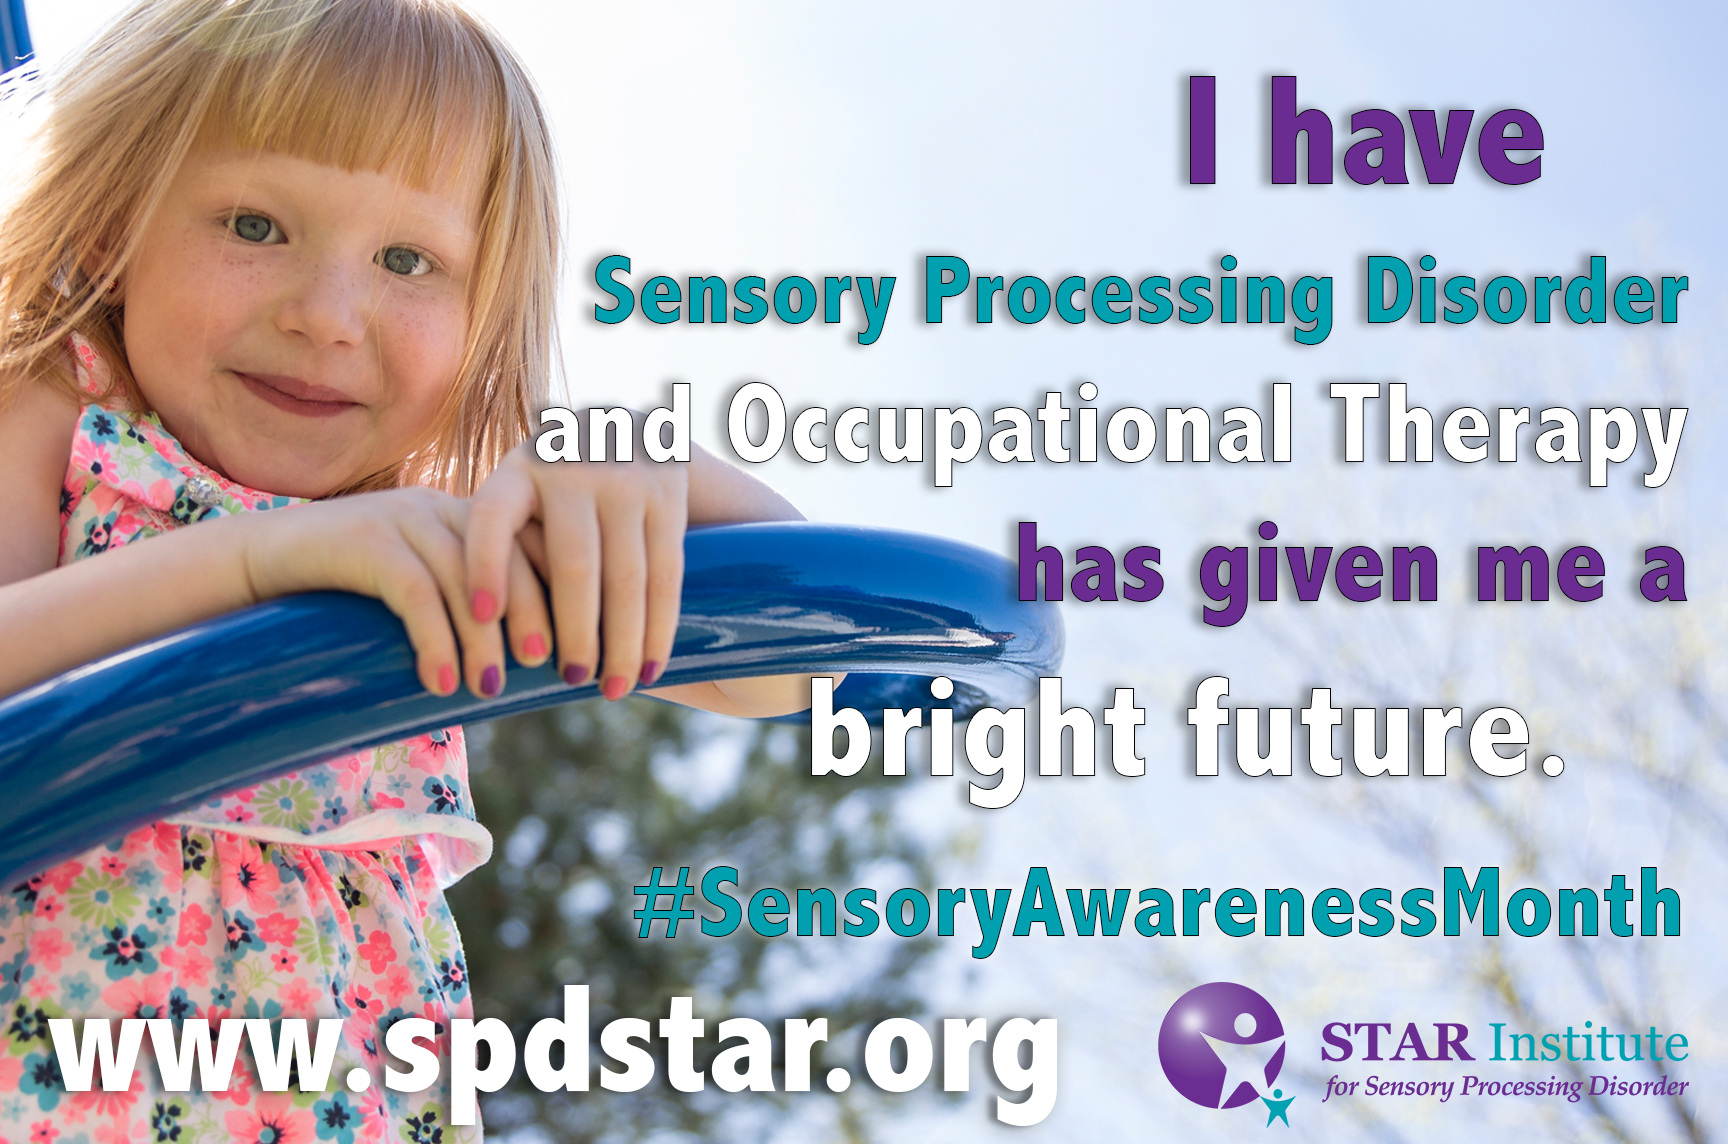 Sensory Awareness Month Image